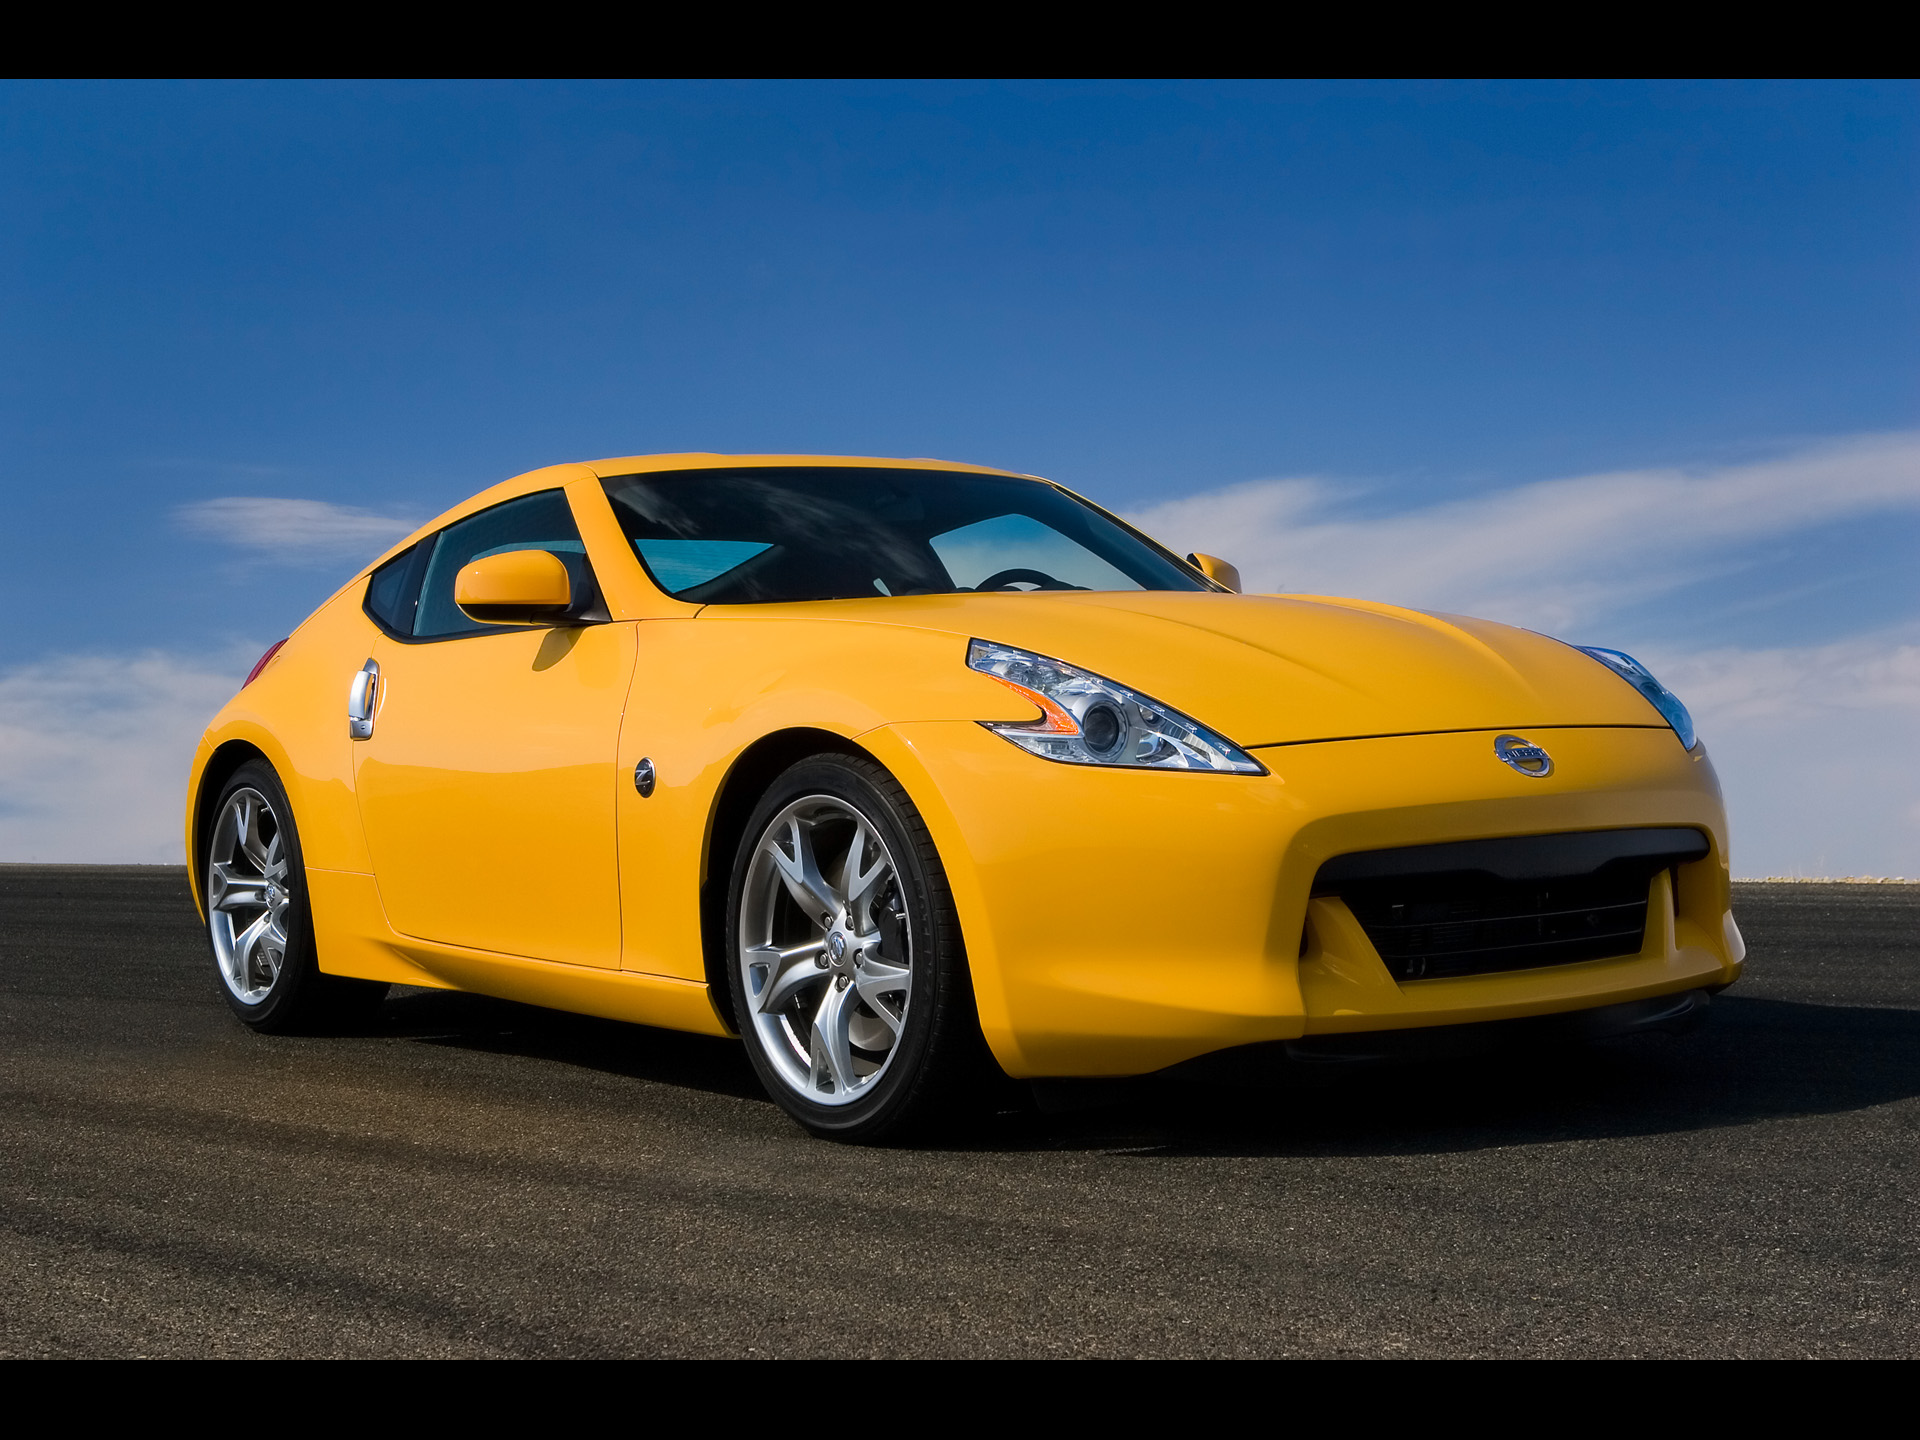 370Z front angle wallpapers 370Z front angle stock photos 1920x1440